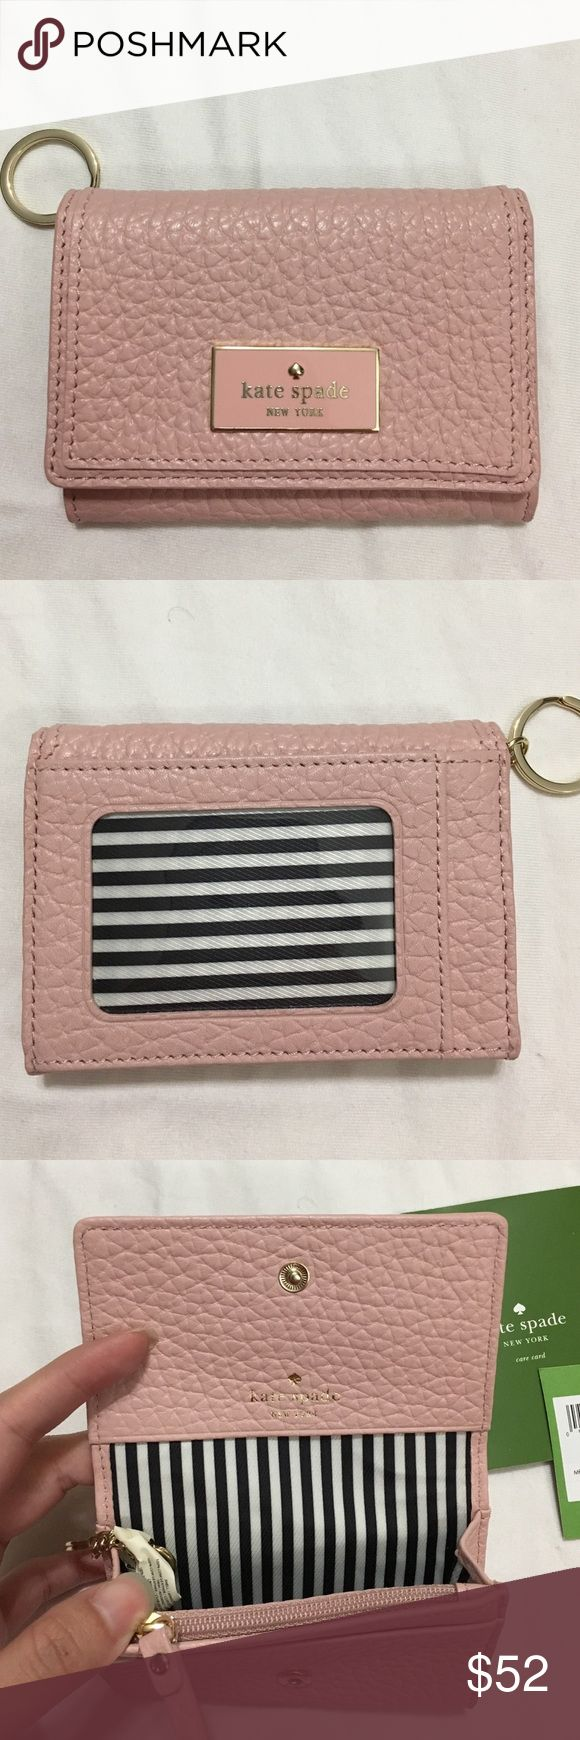 SALE Kate spade mini wallet keychain Kate spade mini wallet keychain in light pink. Super cute and compact. Coin pocket, I.D. Slot, metal emblem. New with tags kate spade Bags Wallets